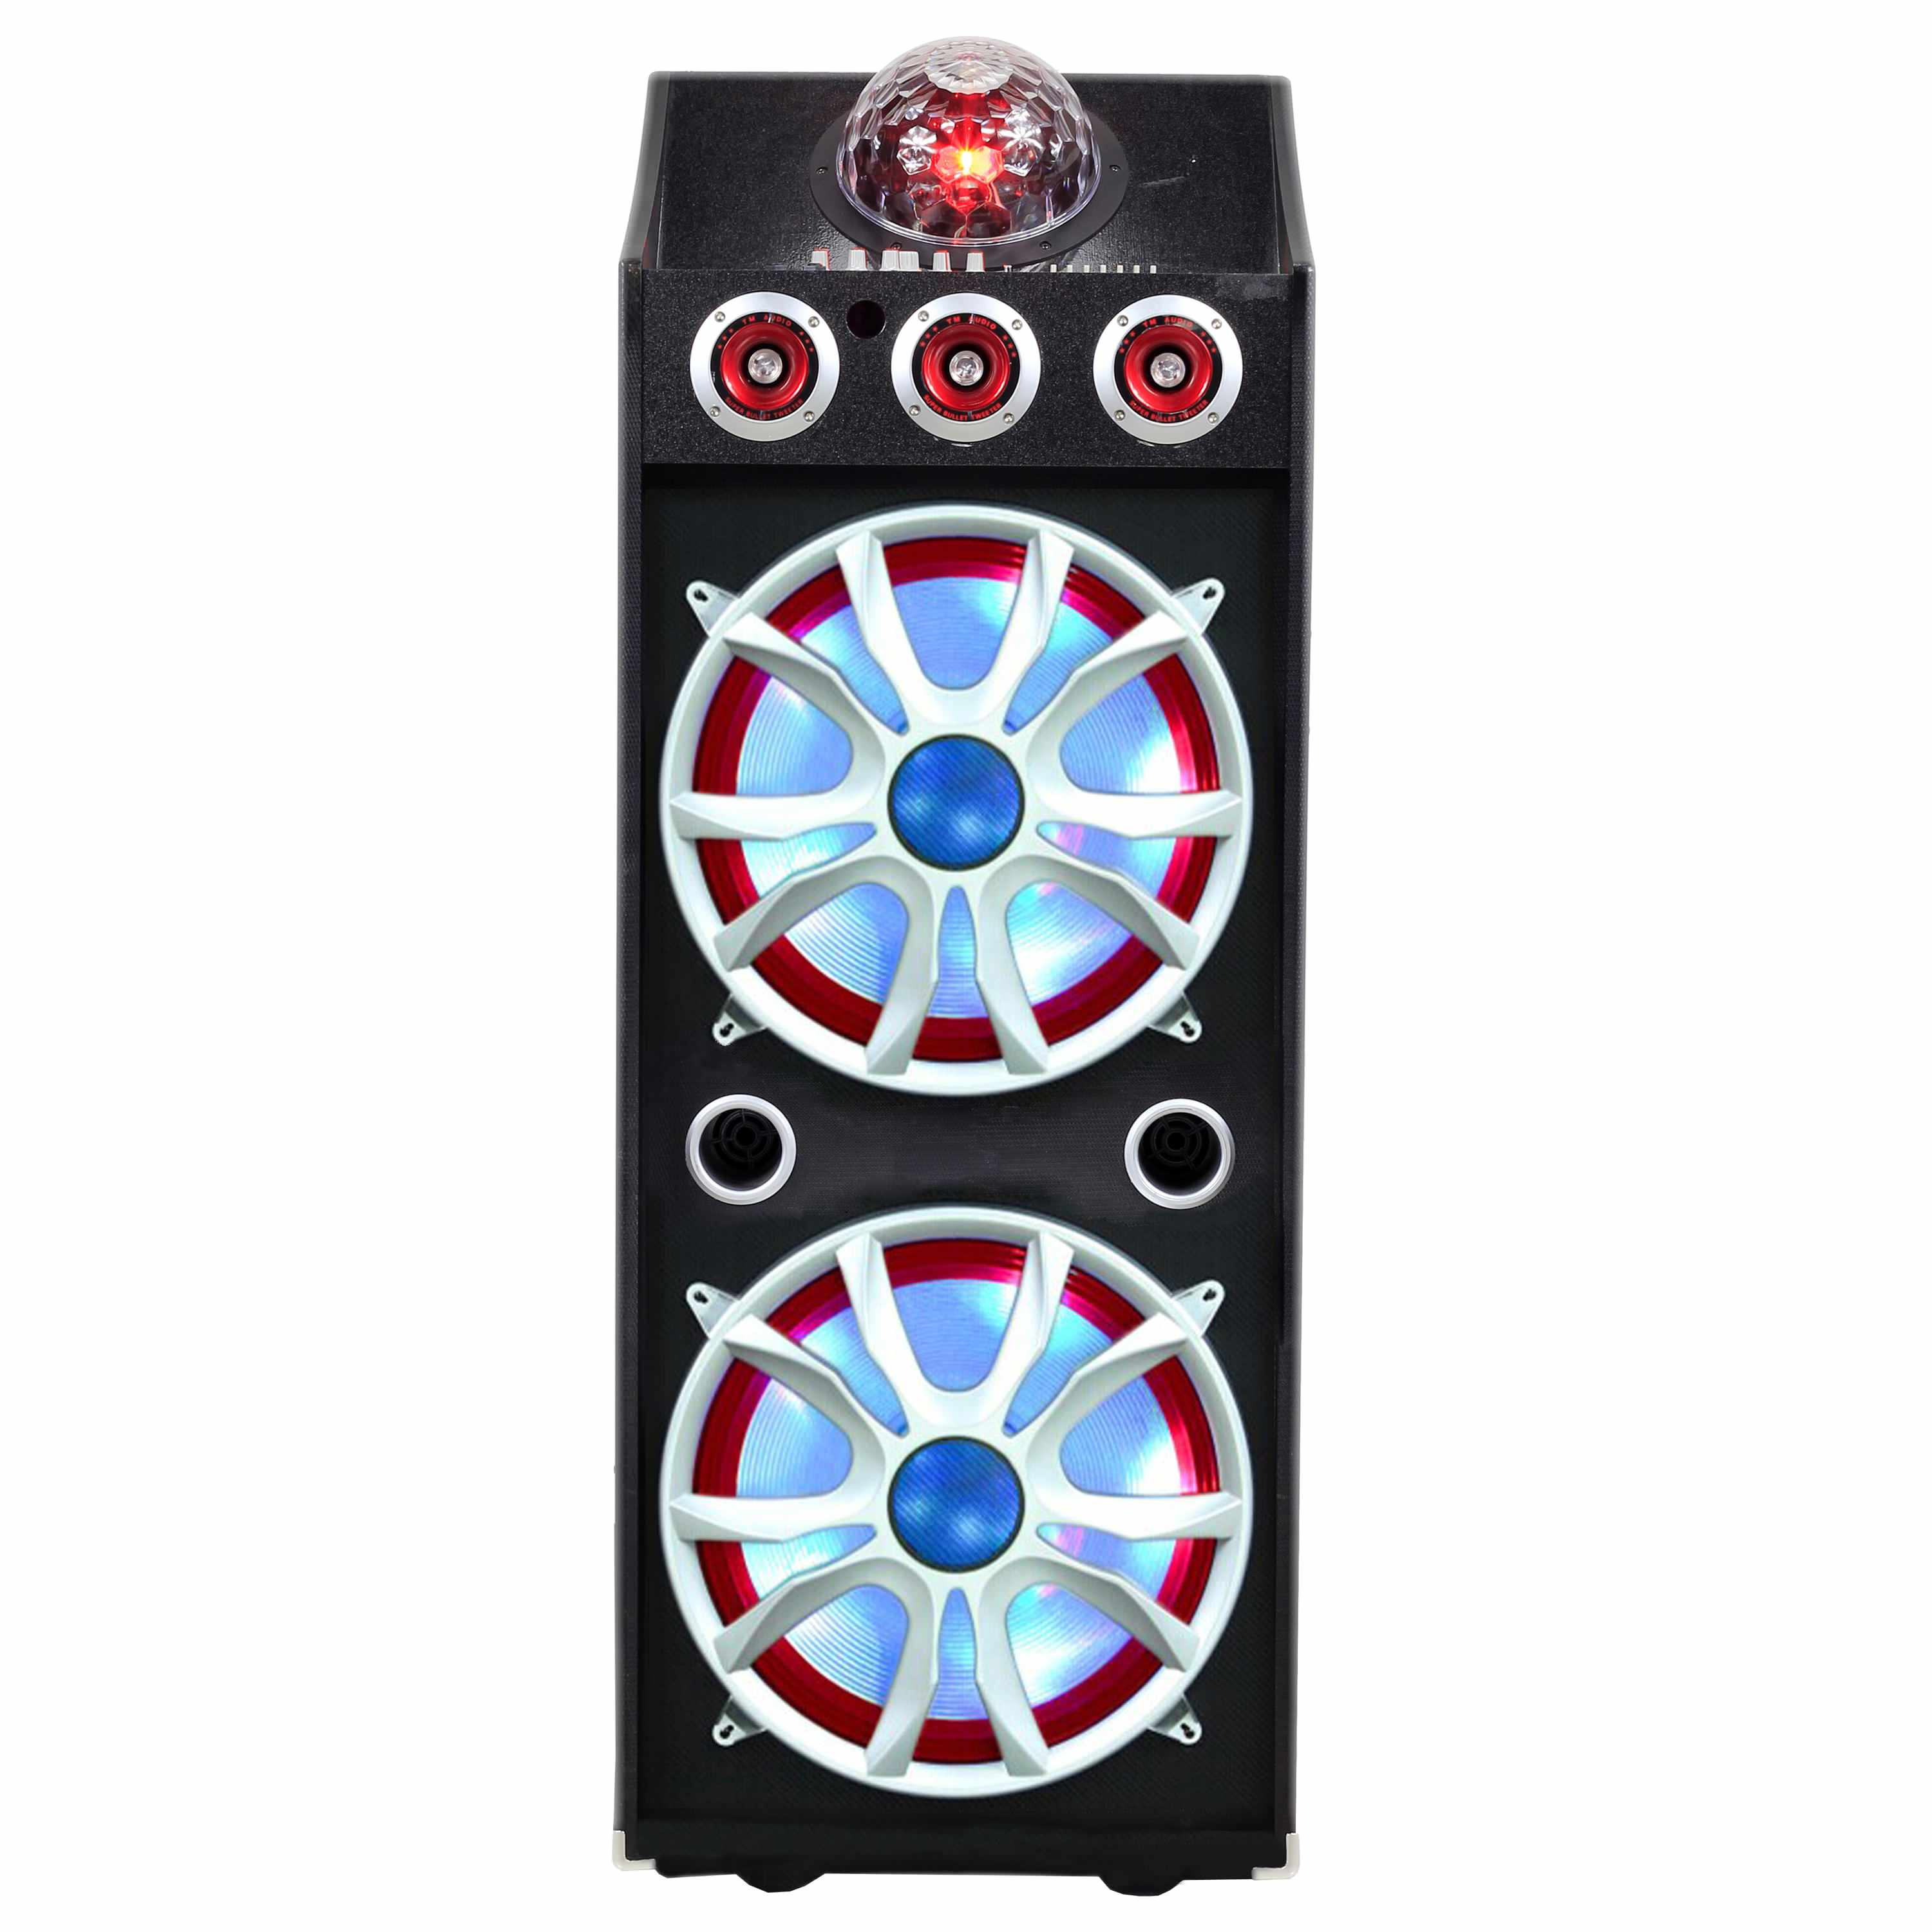 "2 x 15"" BT Professional DJ Speaker with Disco Lights"